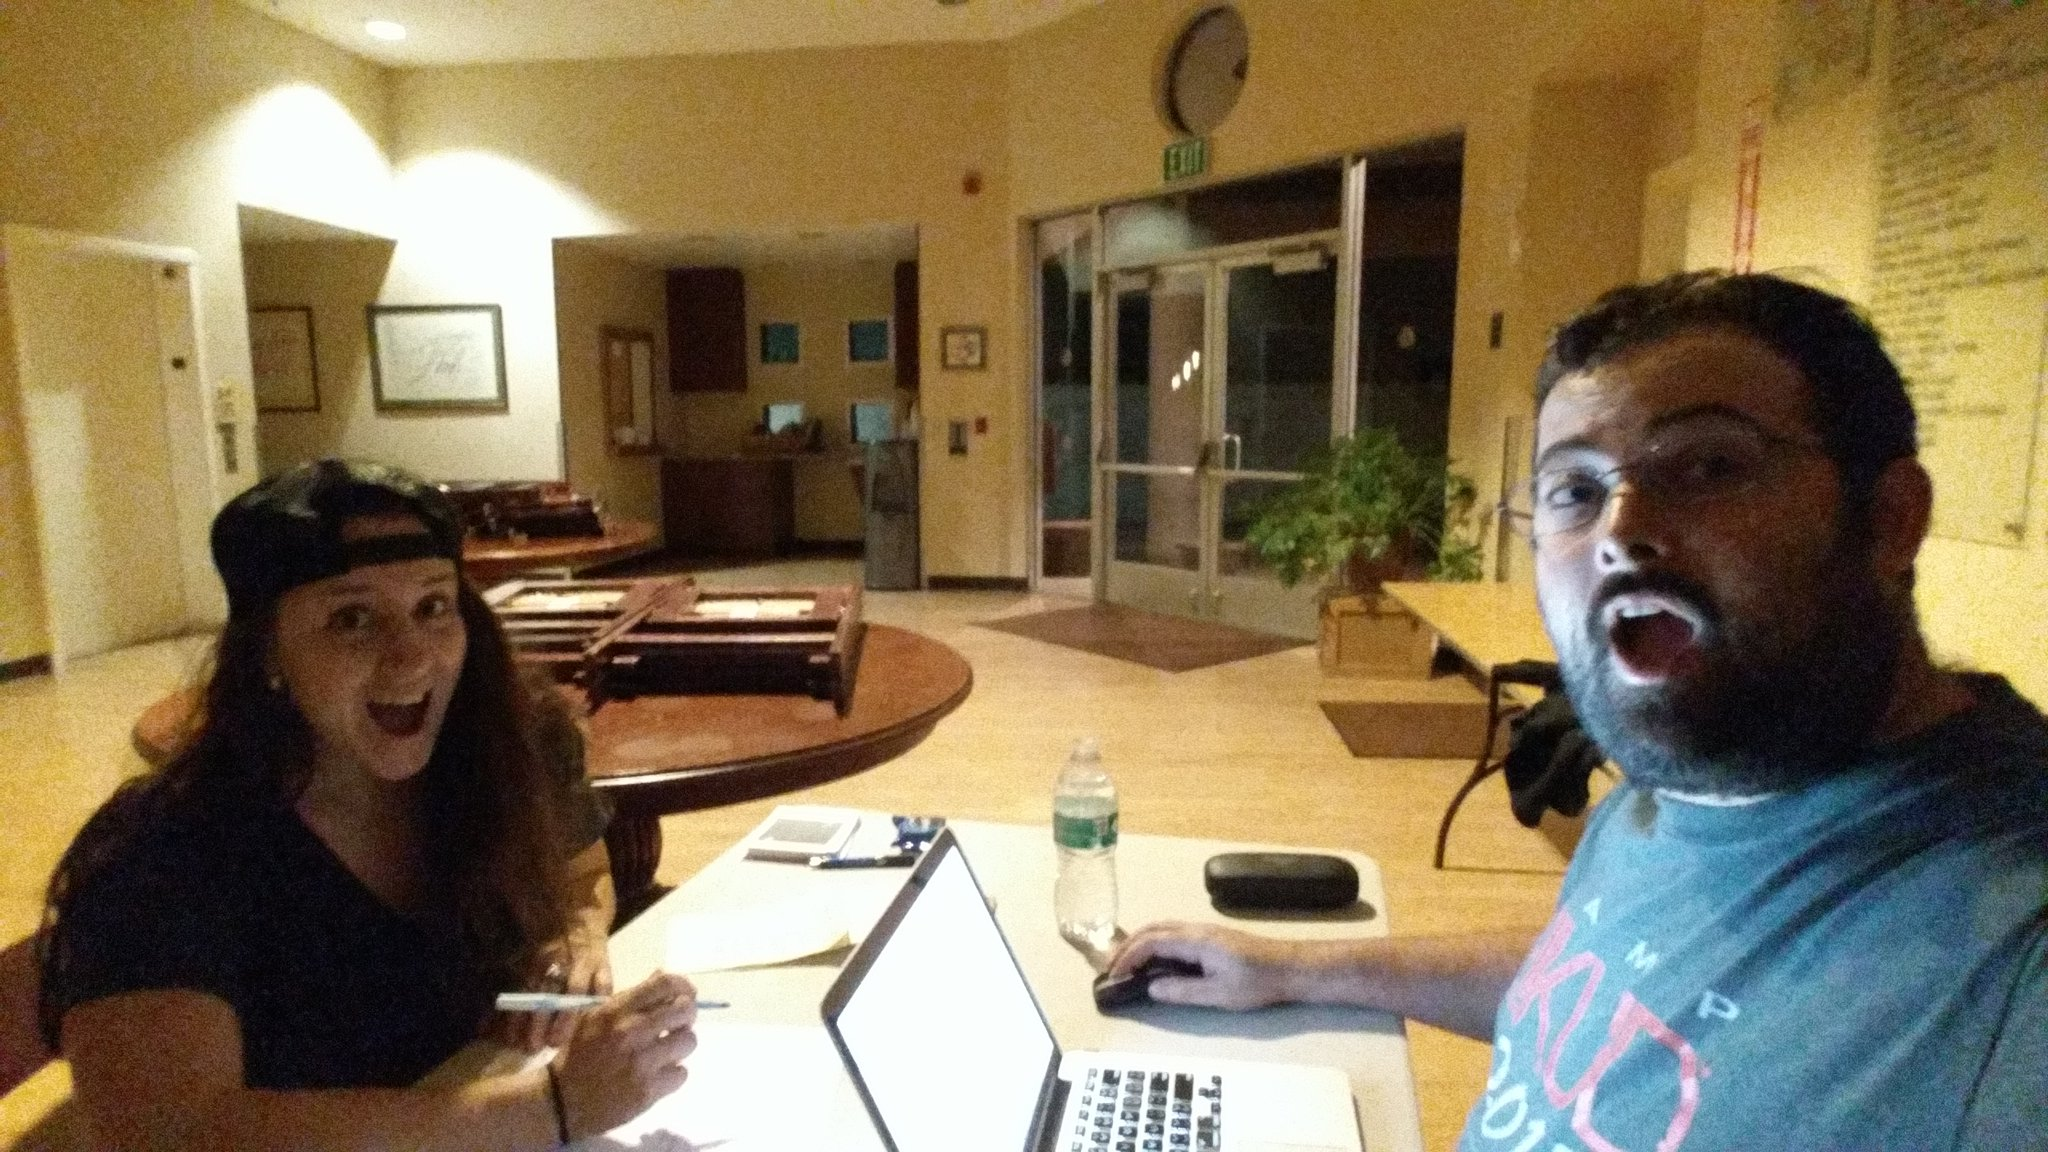 Nothing like one last midnight work session before #SciCommCamp. Can't wait to welcome everyone to camp tomorrow! https://t.co/M8ErQF9GZh